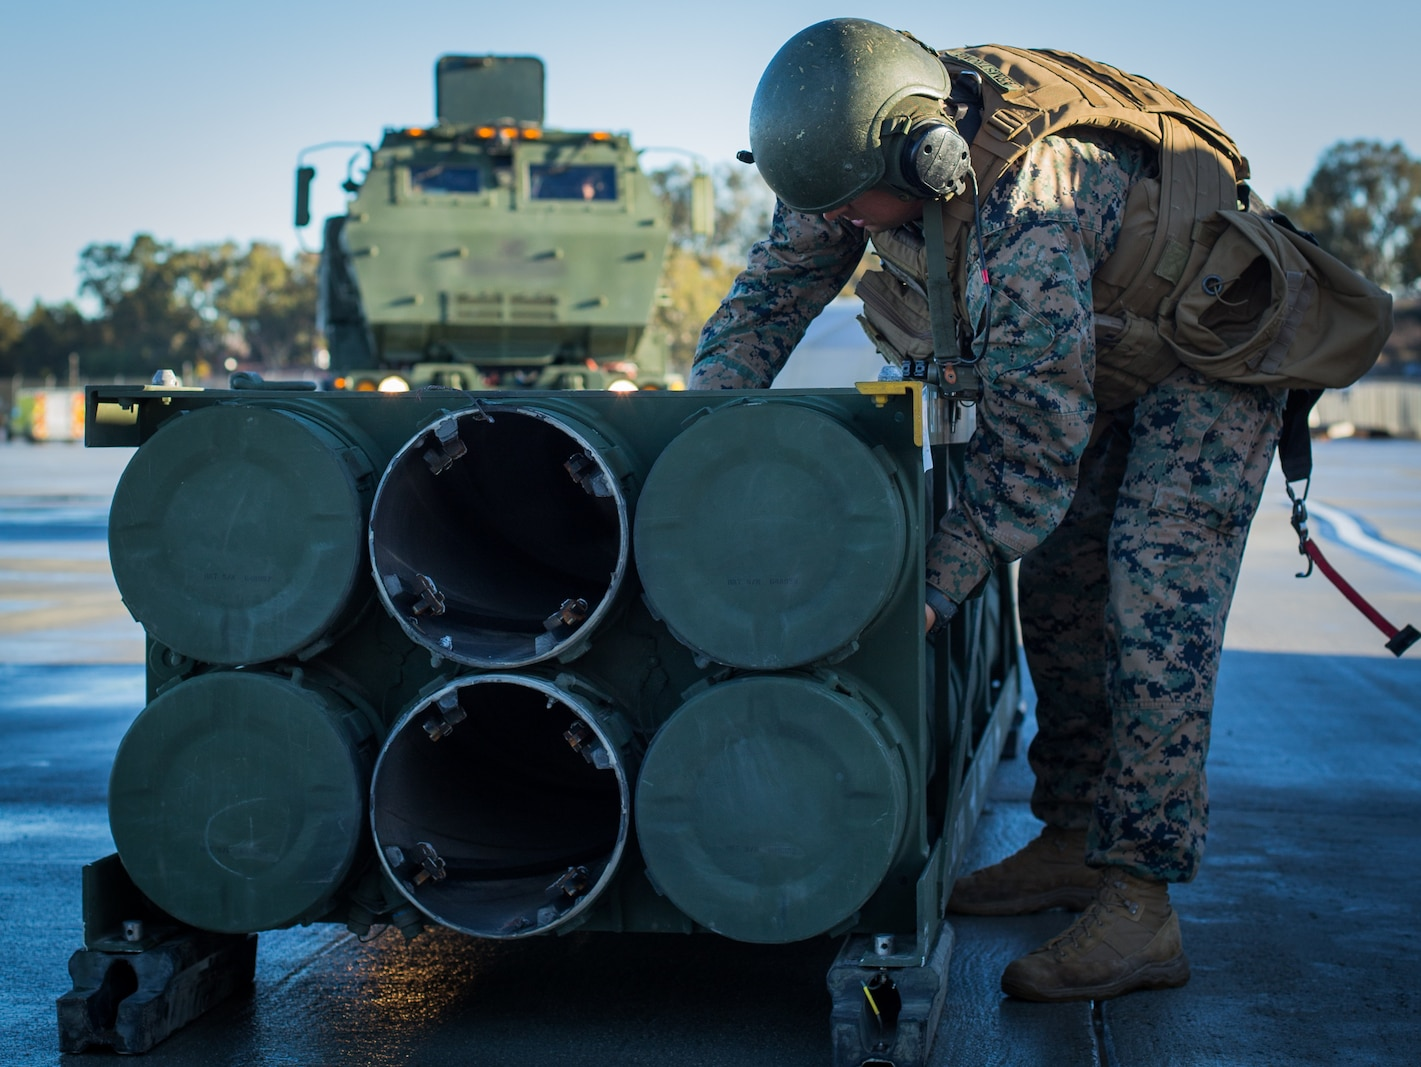 U.S. Marine Corps Staff Sgt. Shane Armstrong, an artillery cannon operator with 5th Battalion, 11th Marine Regiment, 1st Marine Division, checks a stack of M270 rockets during exercise Steel Knight (SK) 19 at Marine Corps Base Camp Pendleton, California, Dec. 7, 2018.